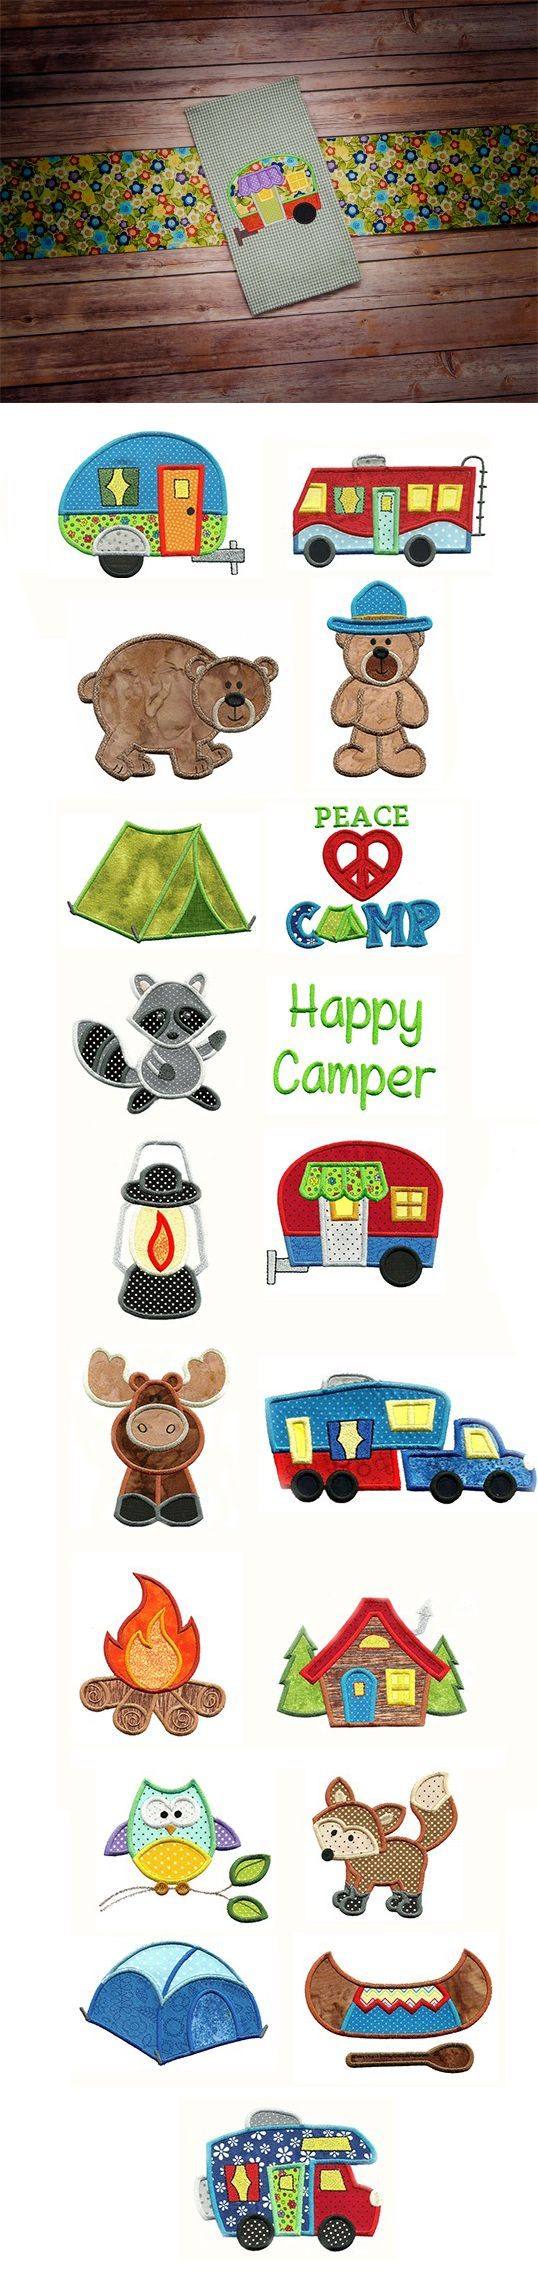 145 best Sew It Appliqué Camping Things❤ images on Pinterest